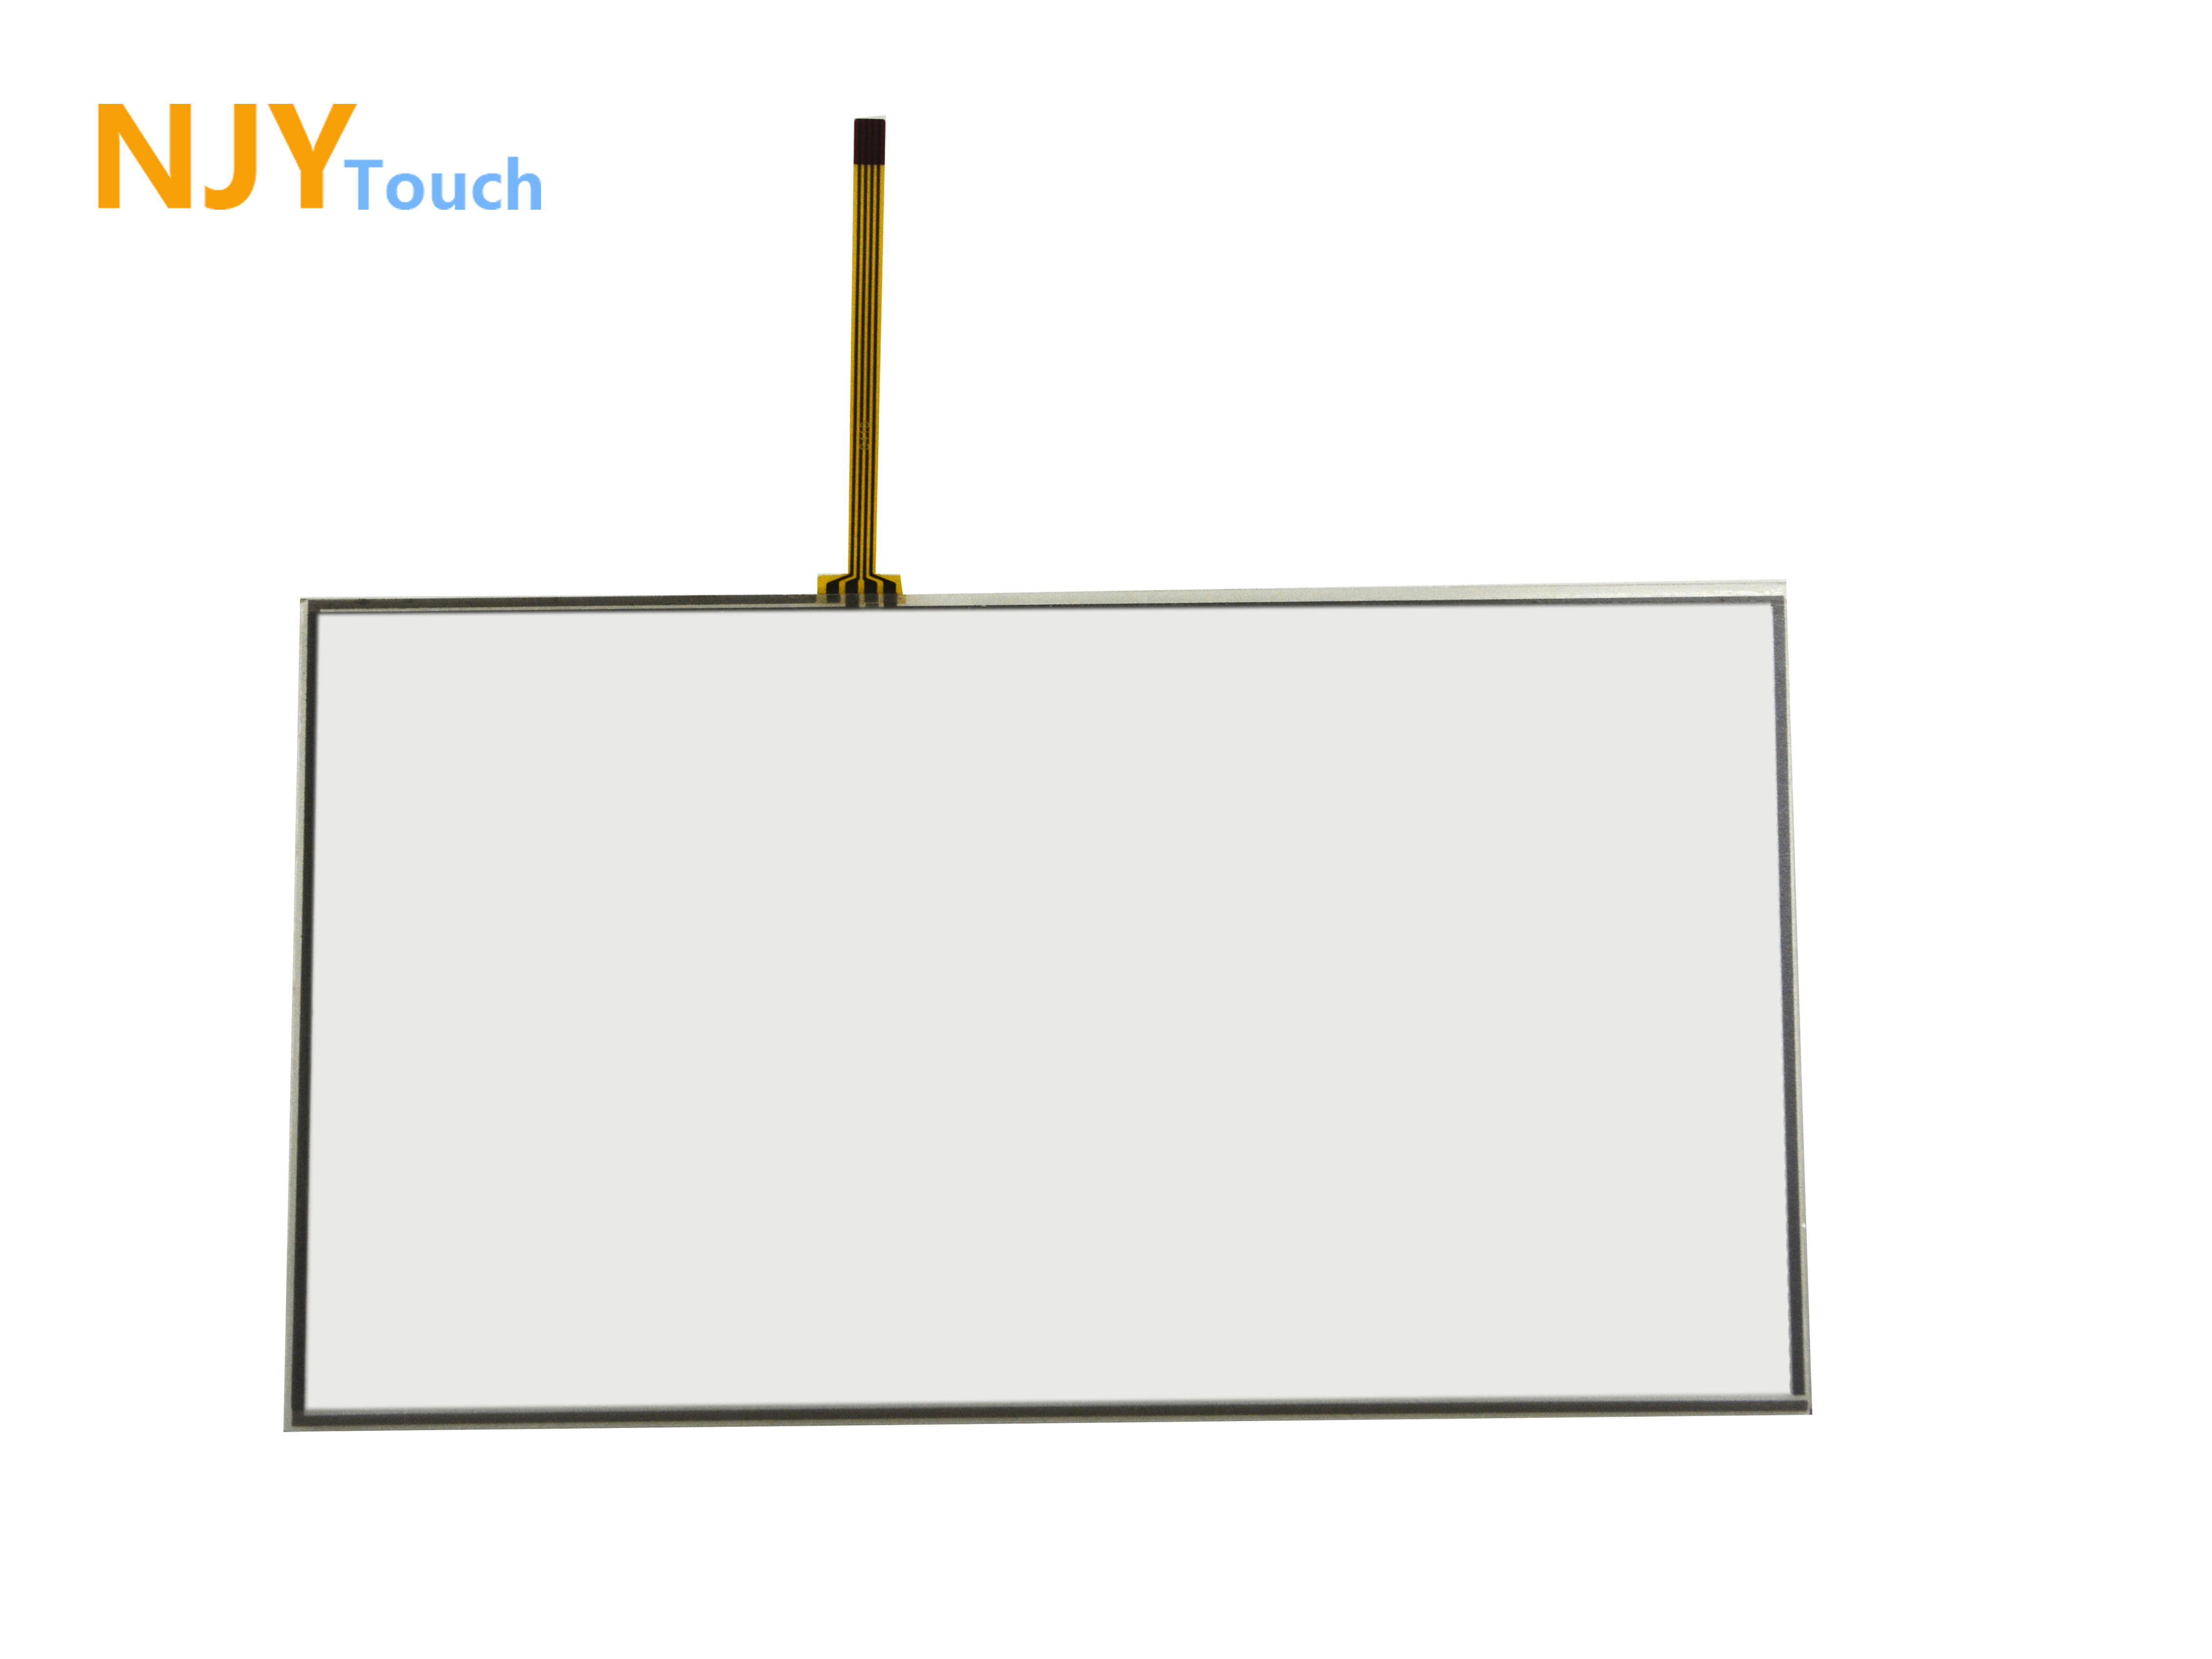 10.2inch 4 Wire Resistive Touch Panel 235mm x 145mm With USB Controller Card Kit